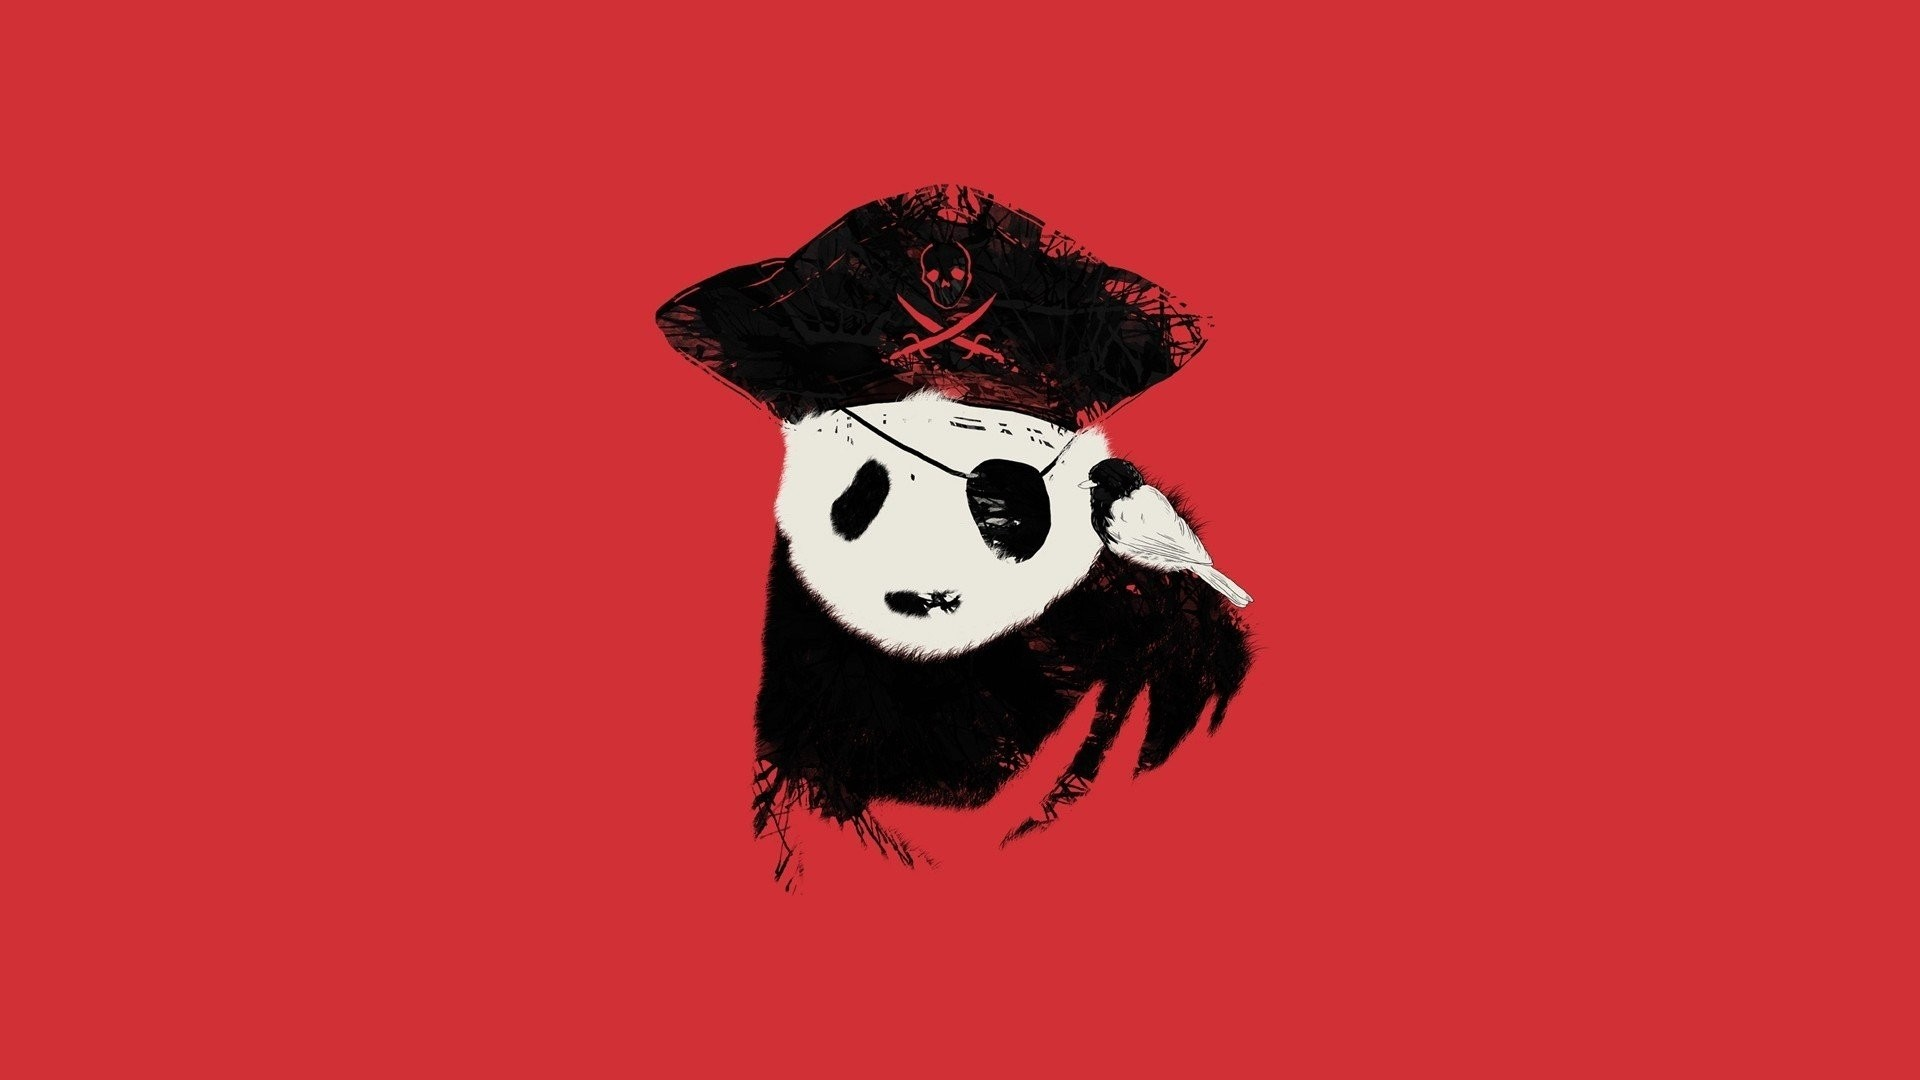 Panda Minimalist Wallpaper